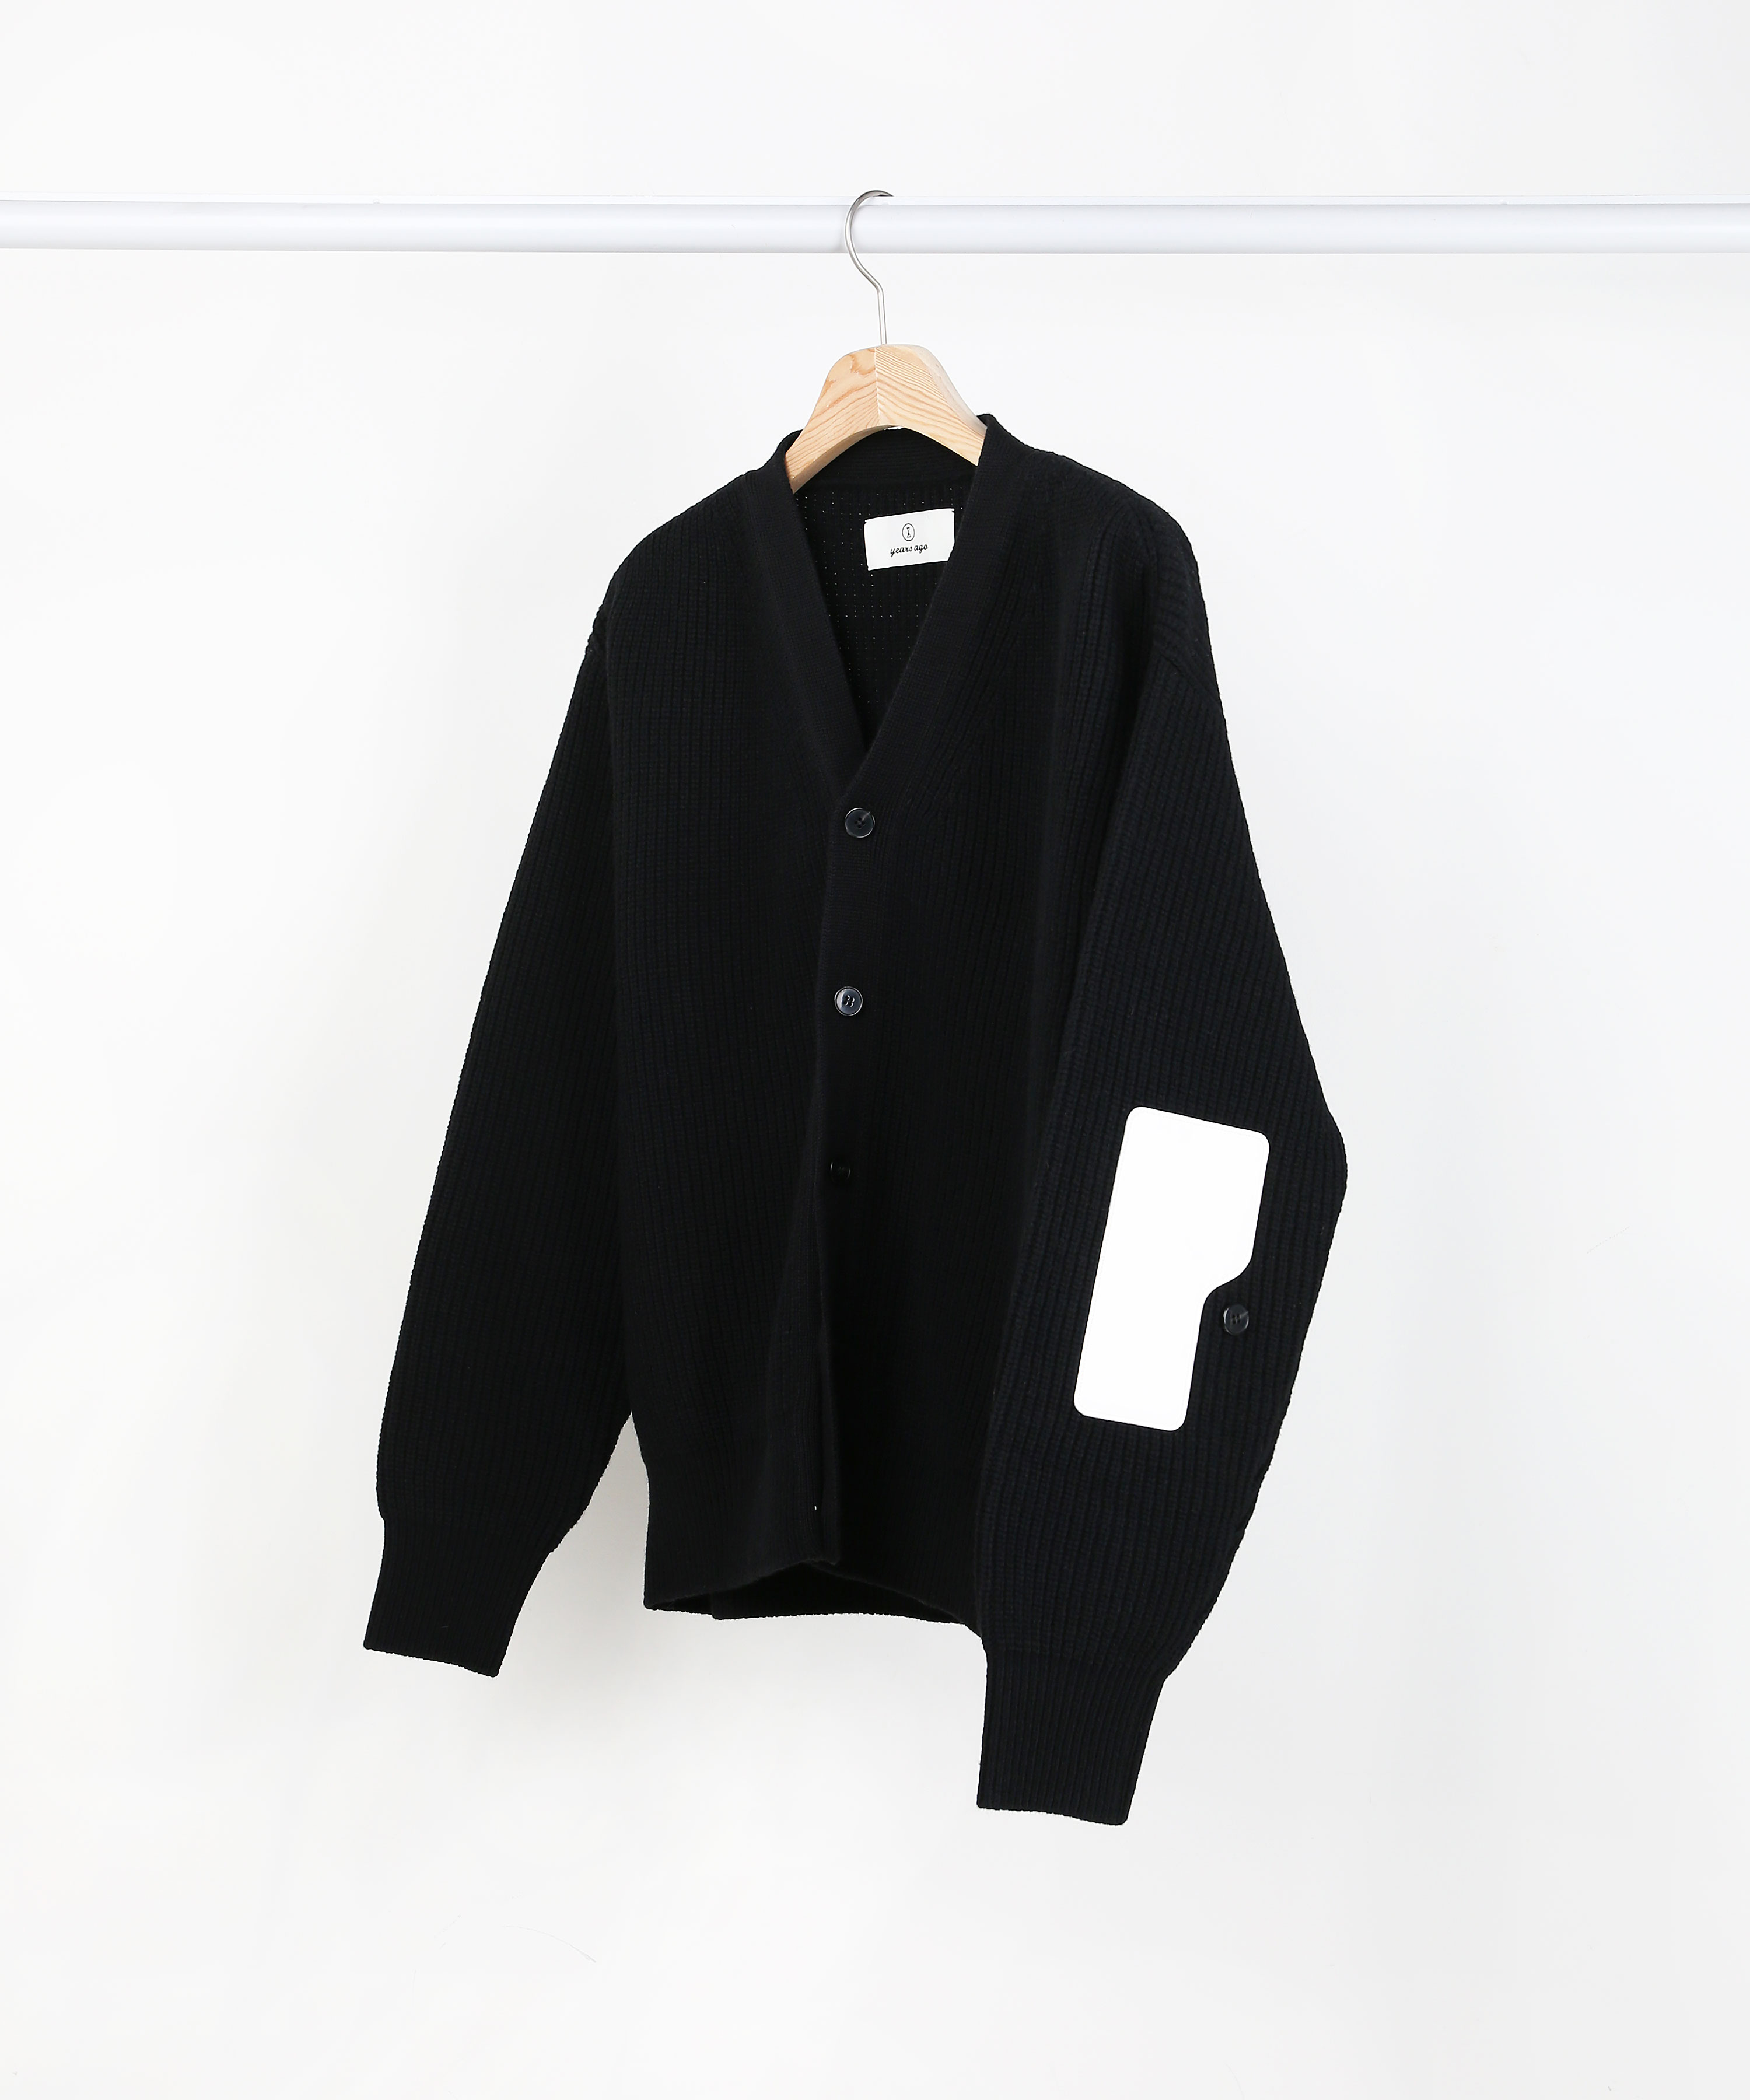 BLACK ROVER WOOL CARDIGAN 01-2